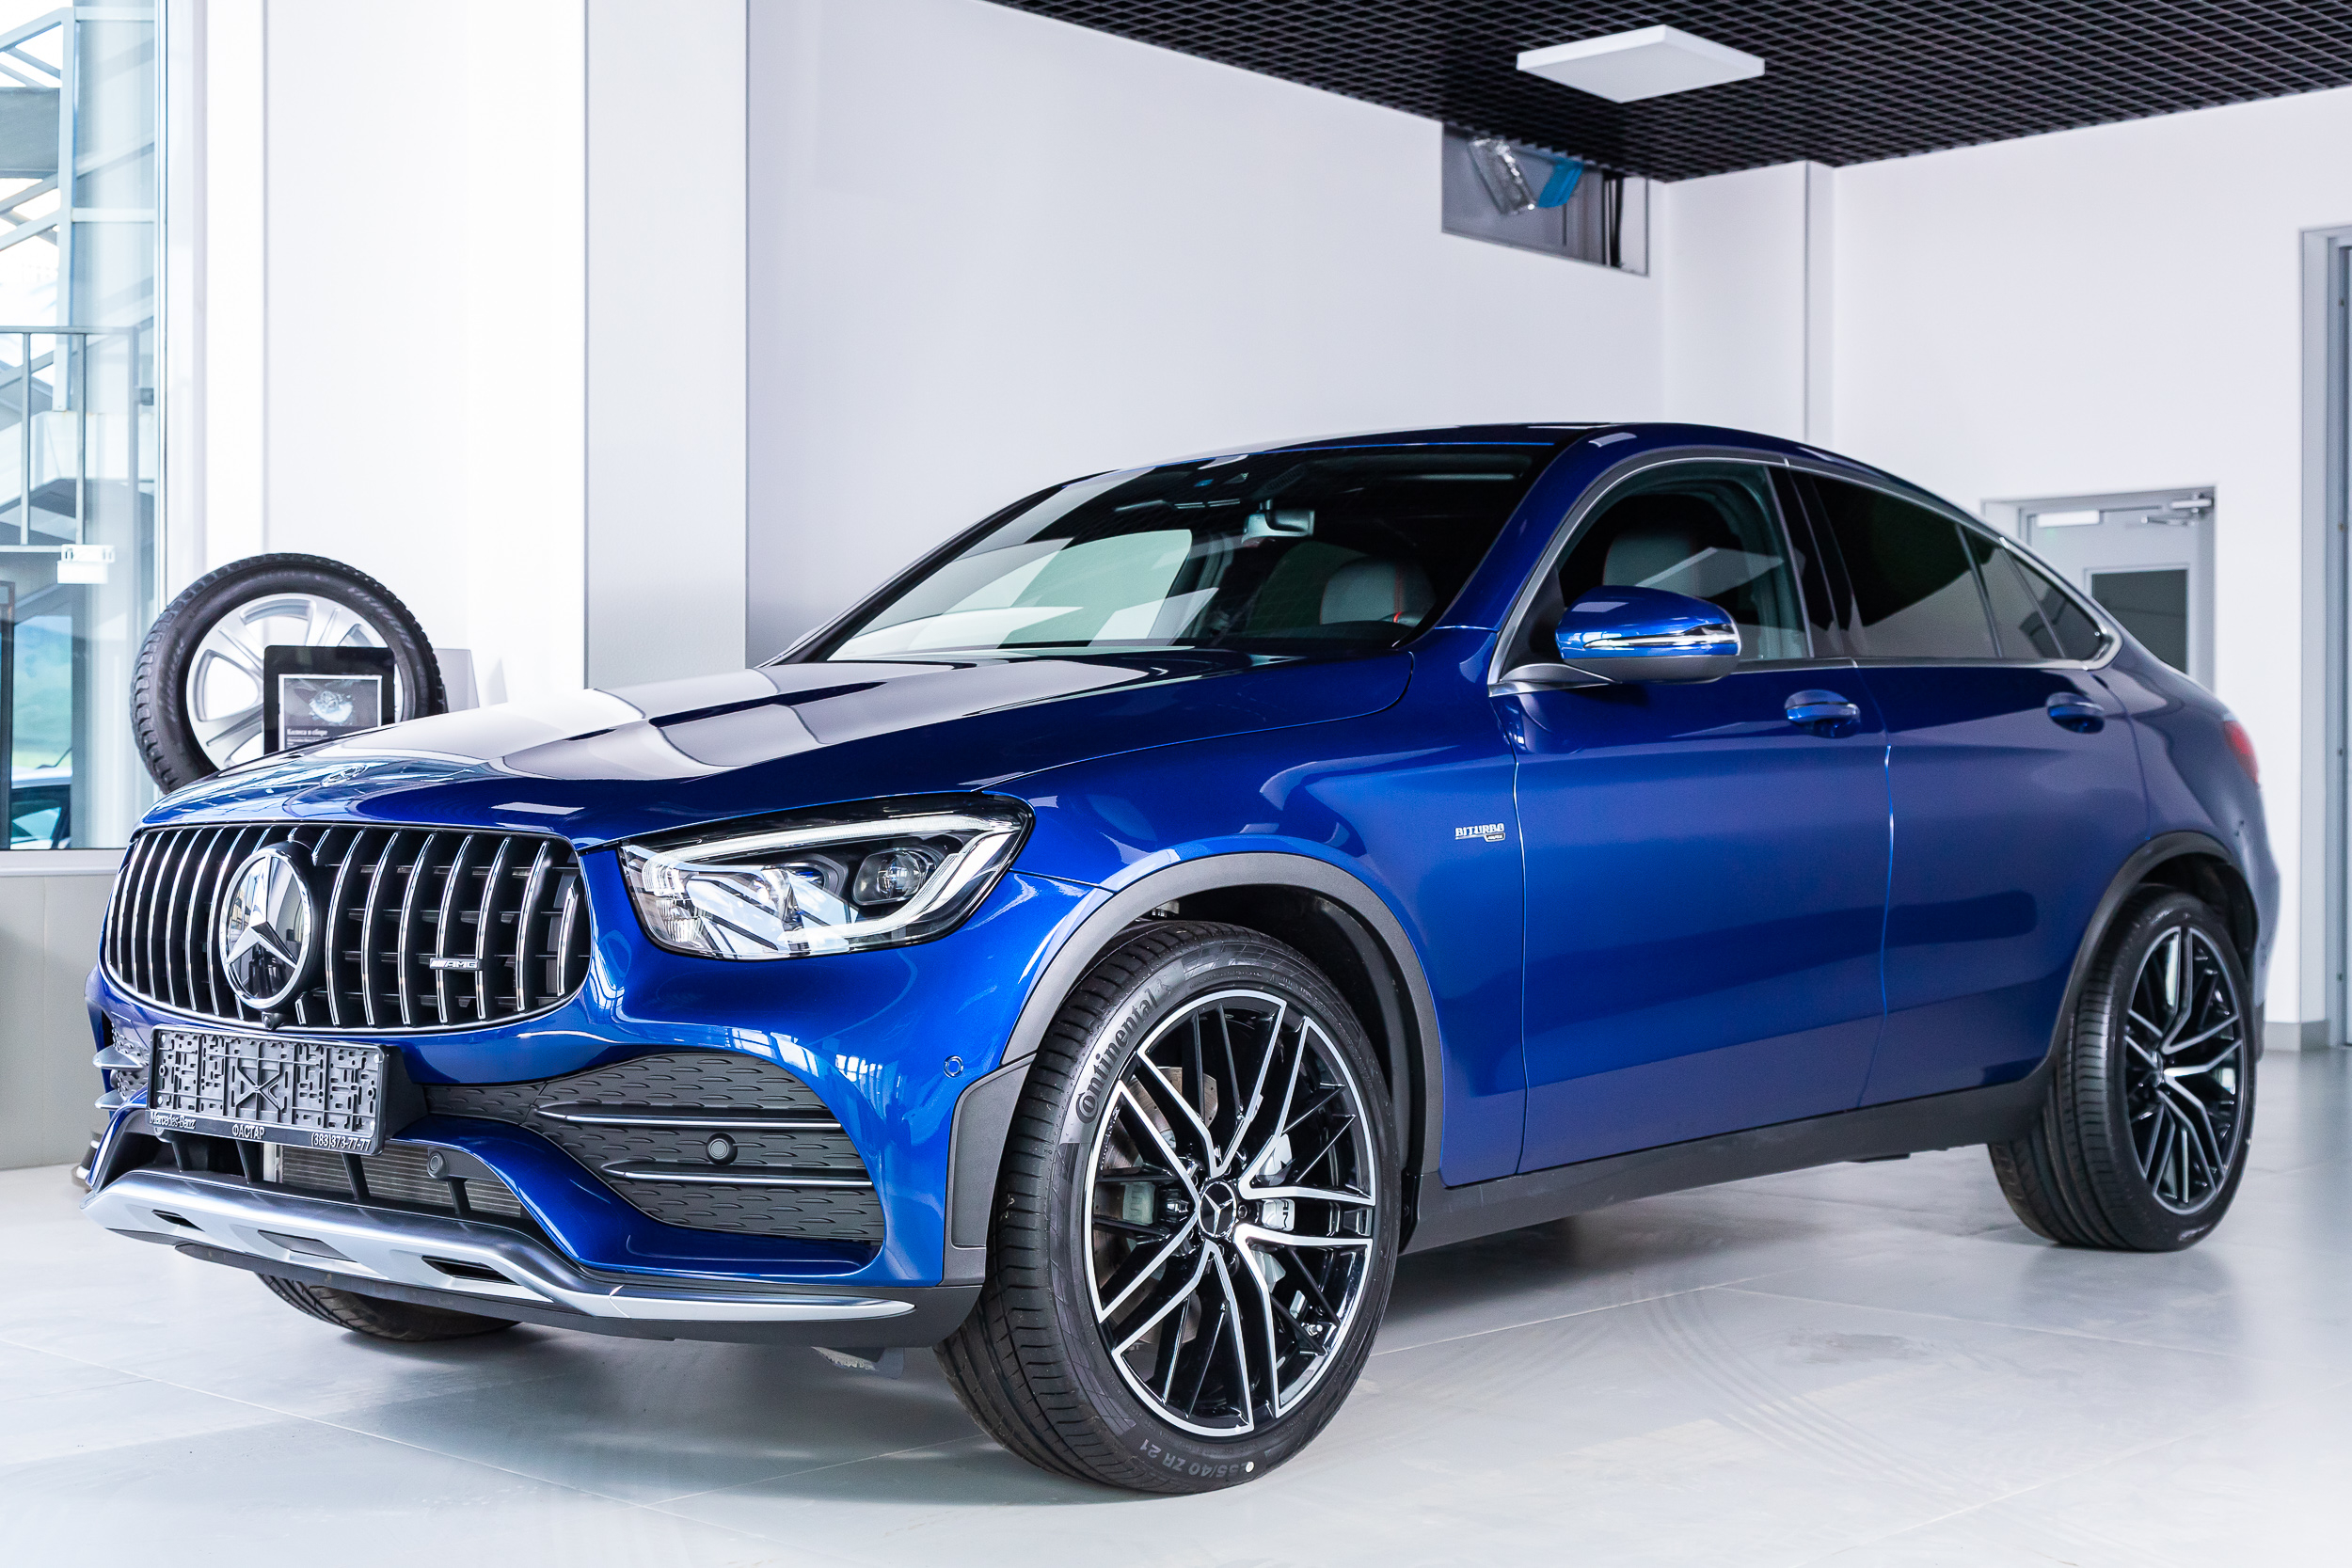 Start Your Engines: Introducing The Latest Mercedes-Benz Lineup